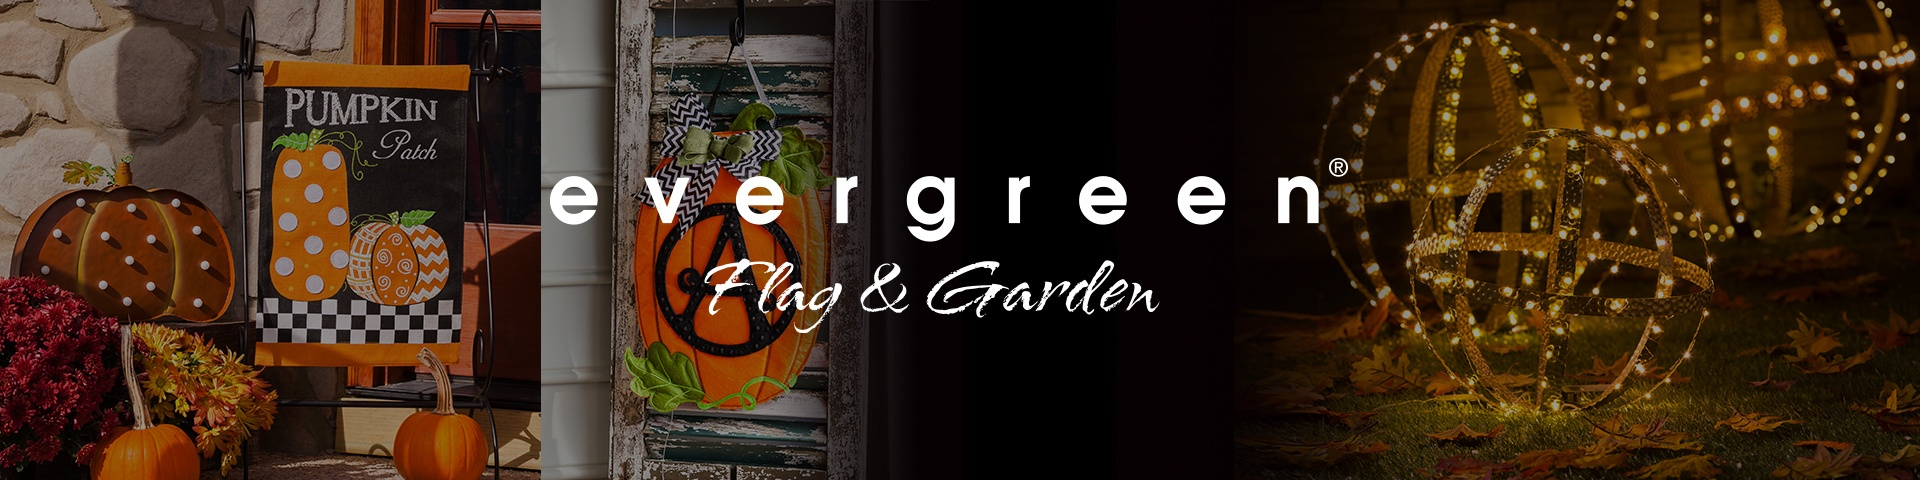 Evergreen Flag and Garden